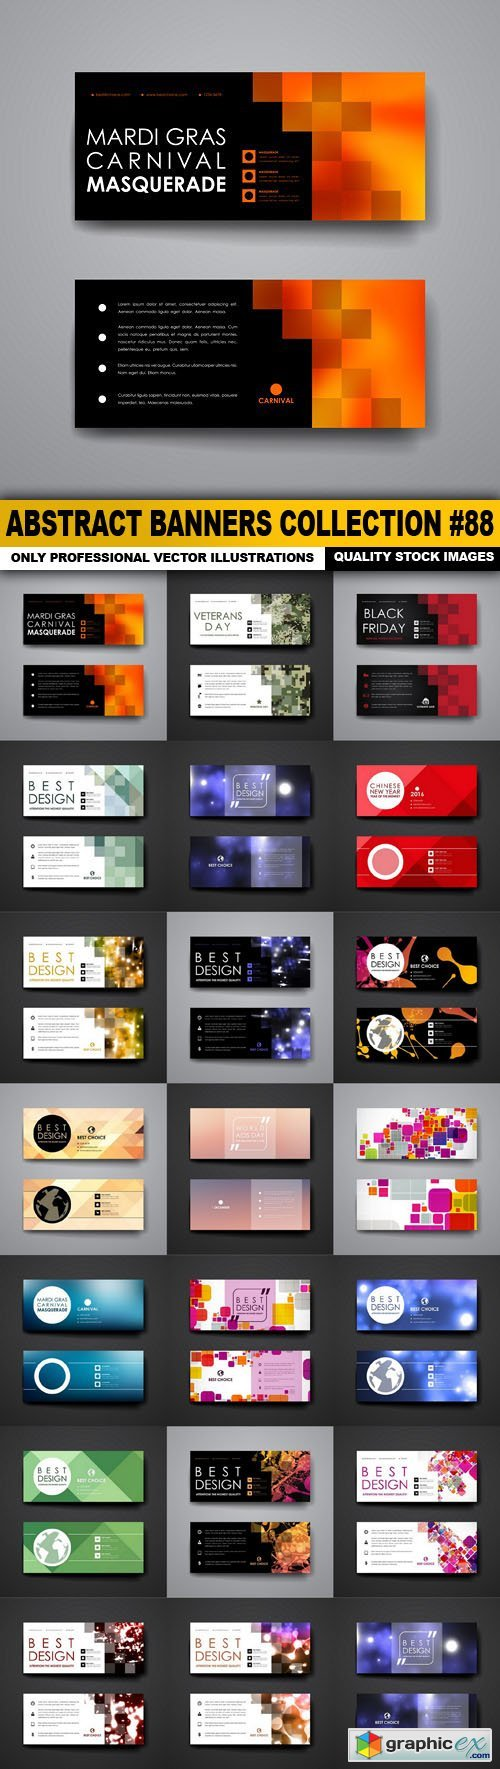 Abstract Banners Collection #88 - 20 Vectors